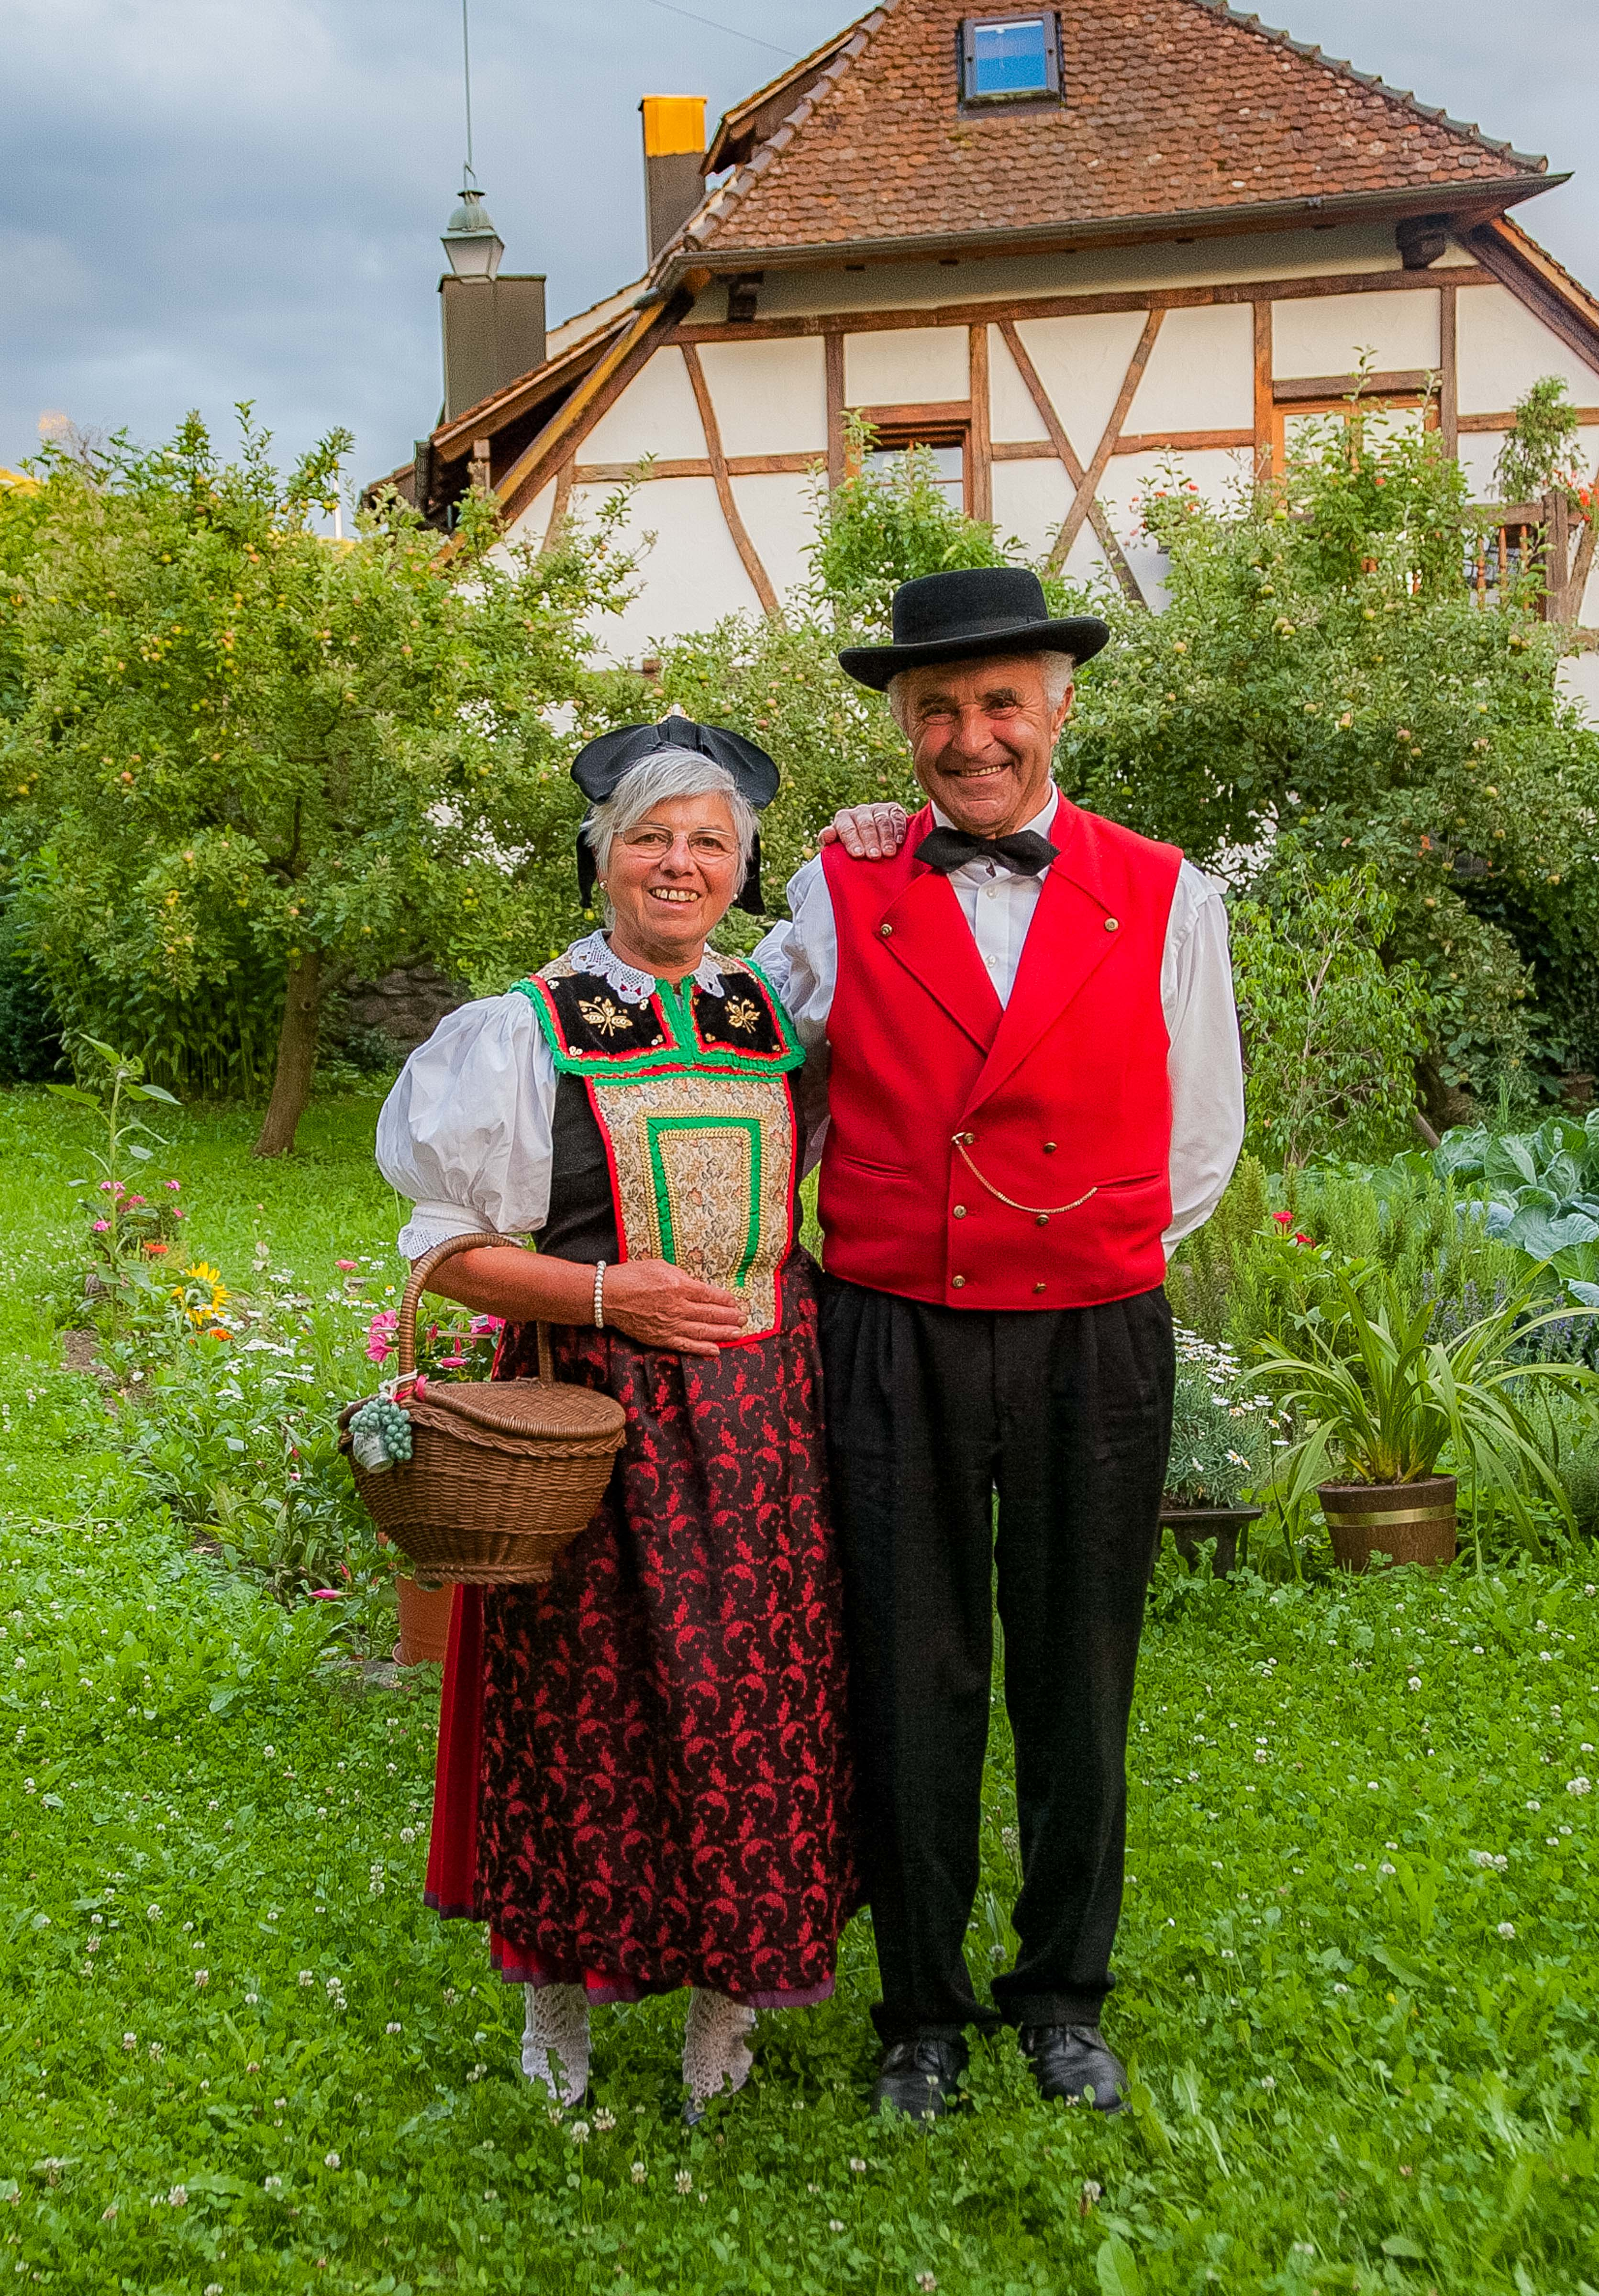 Germany, Baden-Wurtenburg Province, Traditional Clothes, 2008, IMG_6087